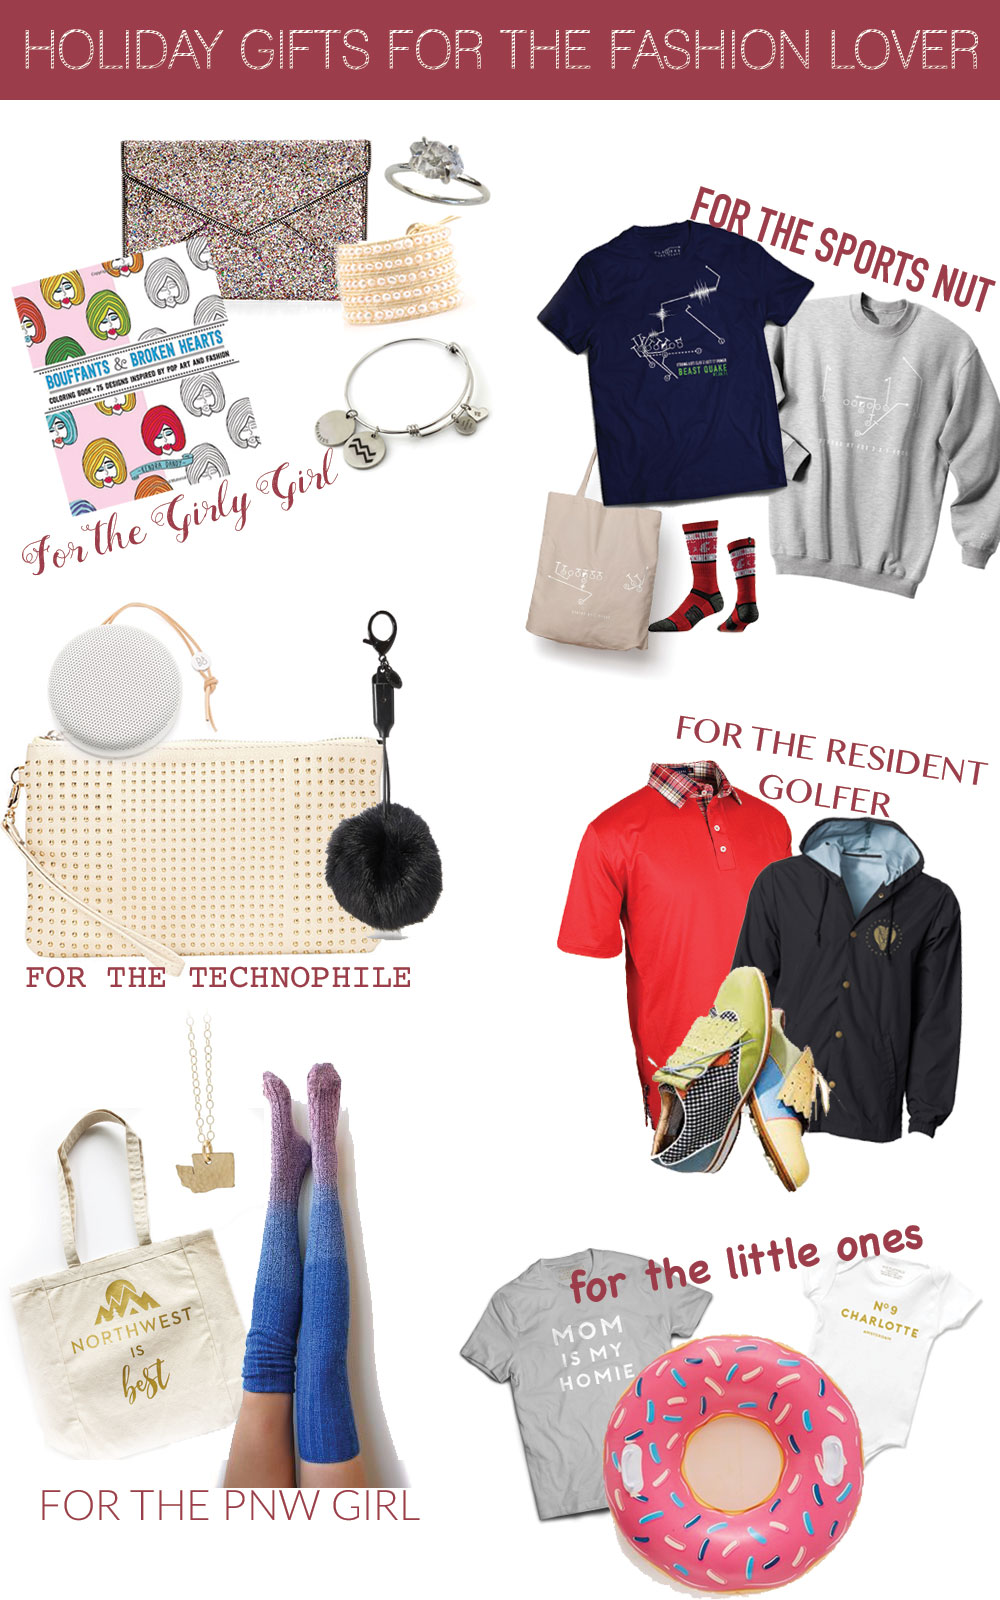 Gifts for Fashion Lovers // Holiday Gift Guide 2016 @hellorigby